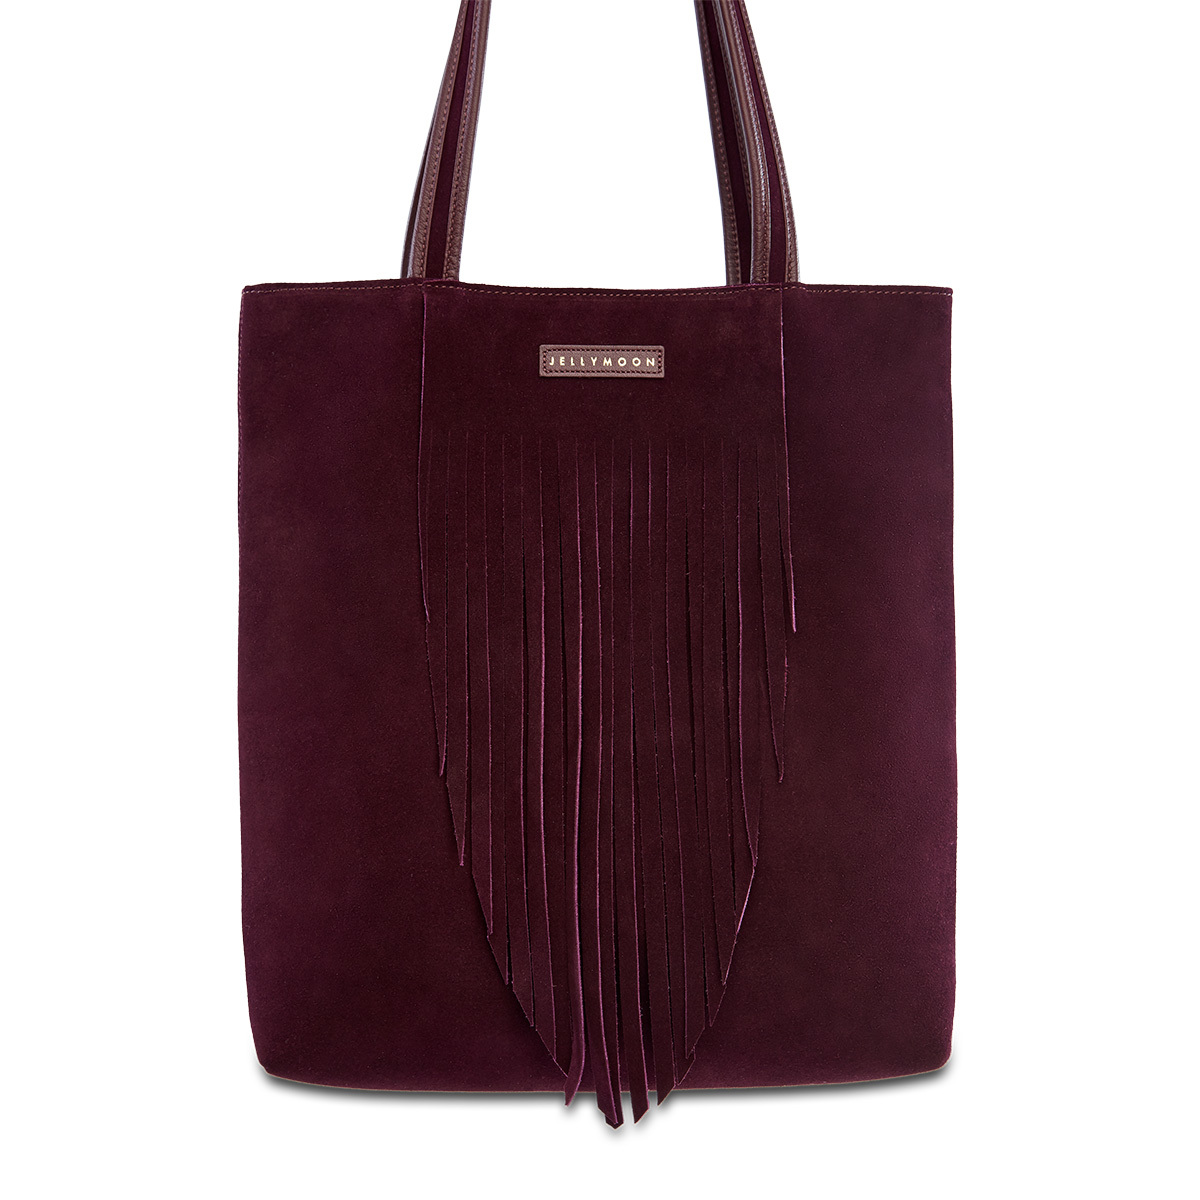 Bolso shopper con flecos, de Jellymoon (225 euros).